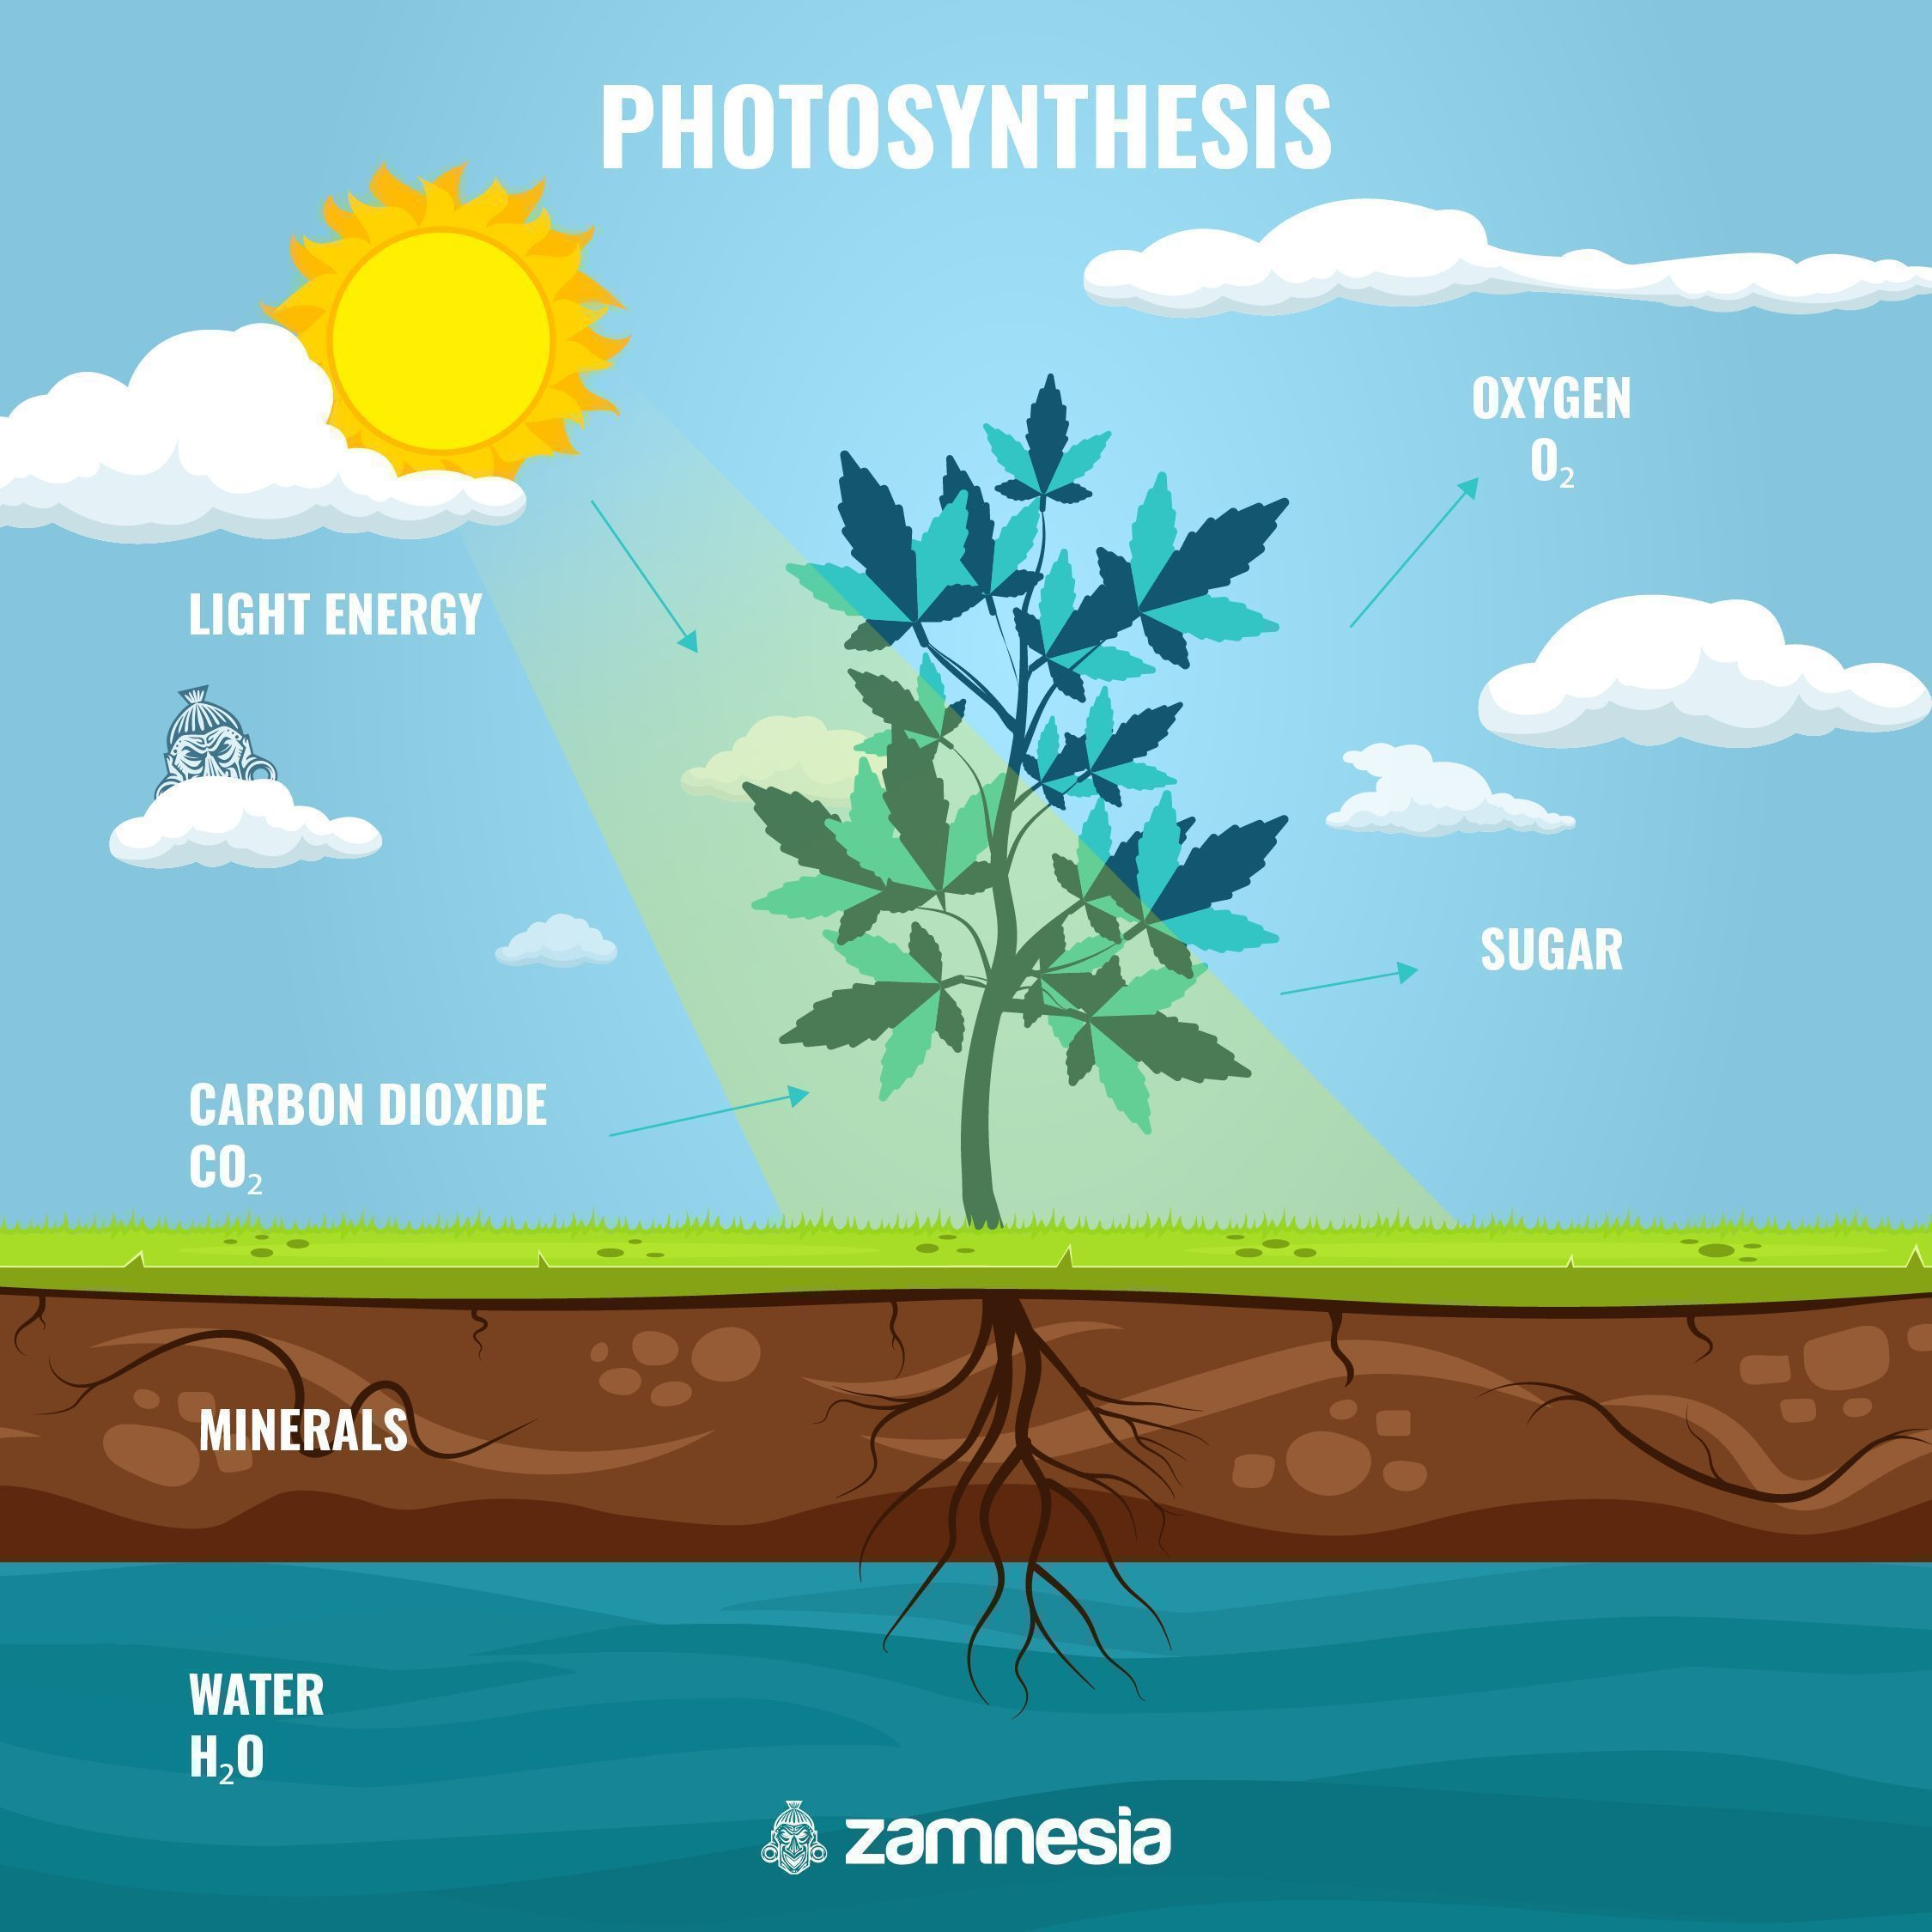 IMPORTANCE OF PHOTOSYNTHESIS FOR SUGARS IN CANNABIS